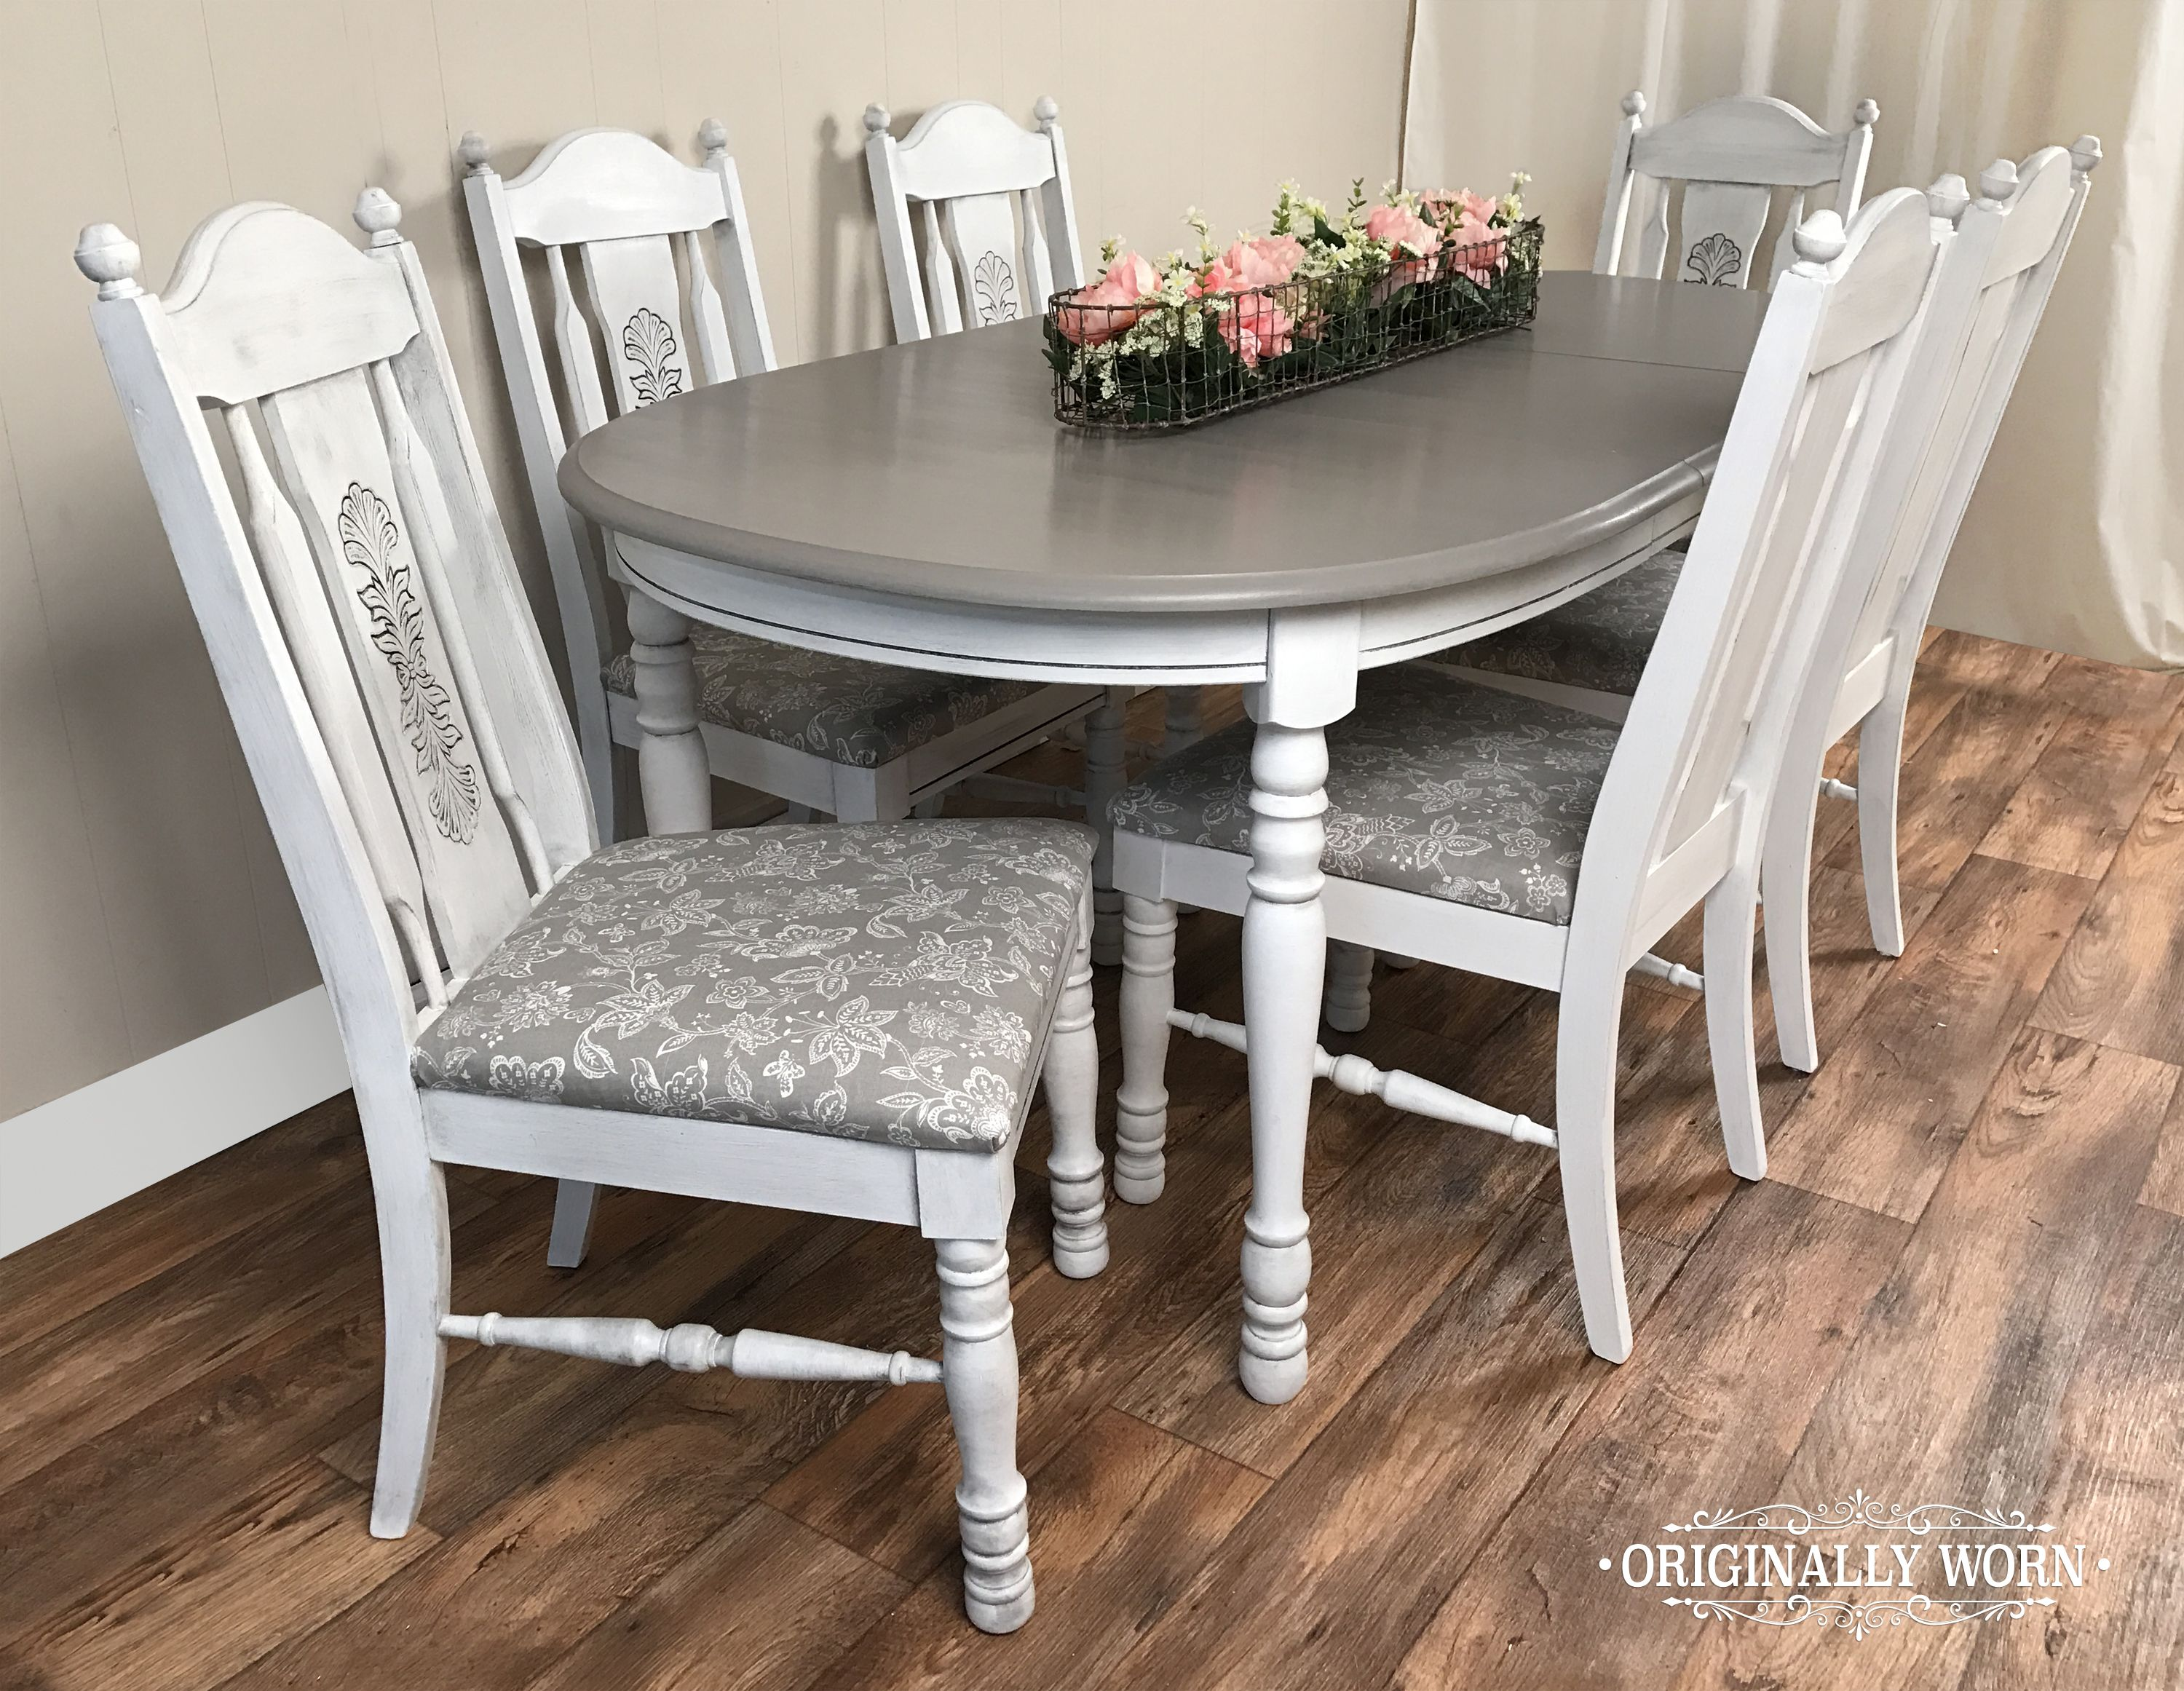 7 Piece Oval Dining Set In Annie Sloan Chalk Paint In Pure White